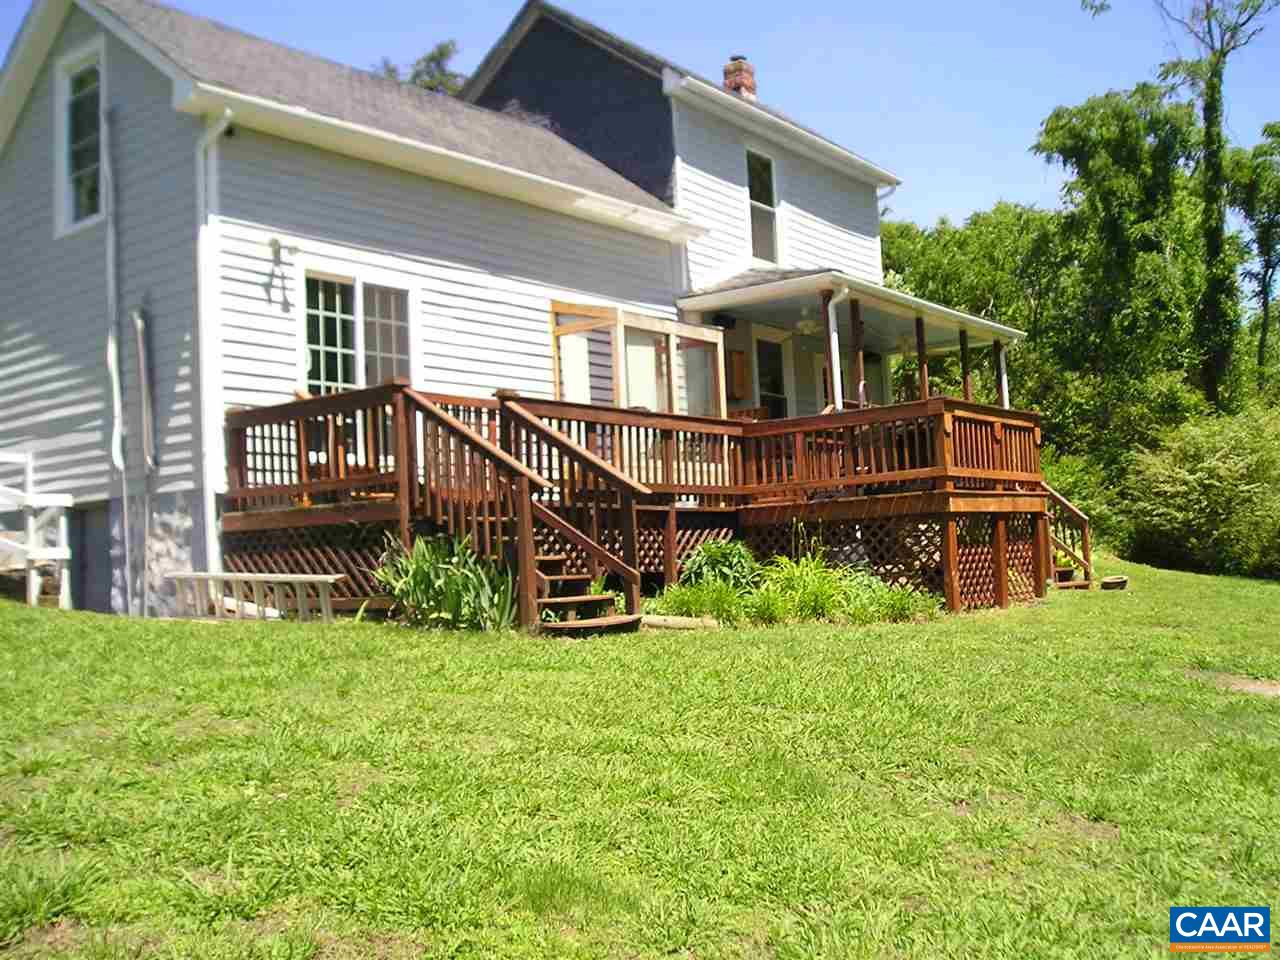 647 Morgan Hill S ROUTE 672, ARVONIA, VA 23004